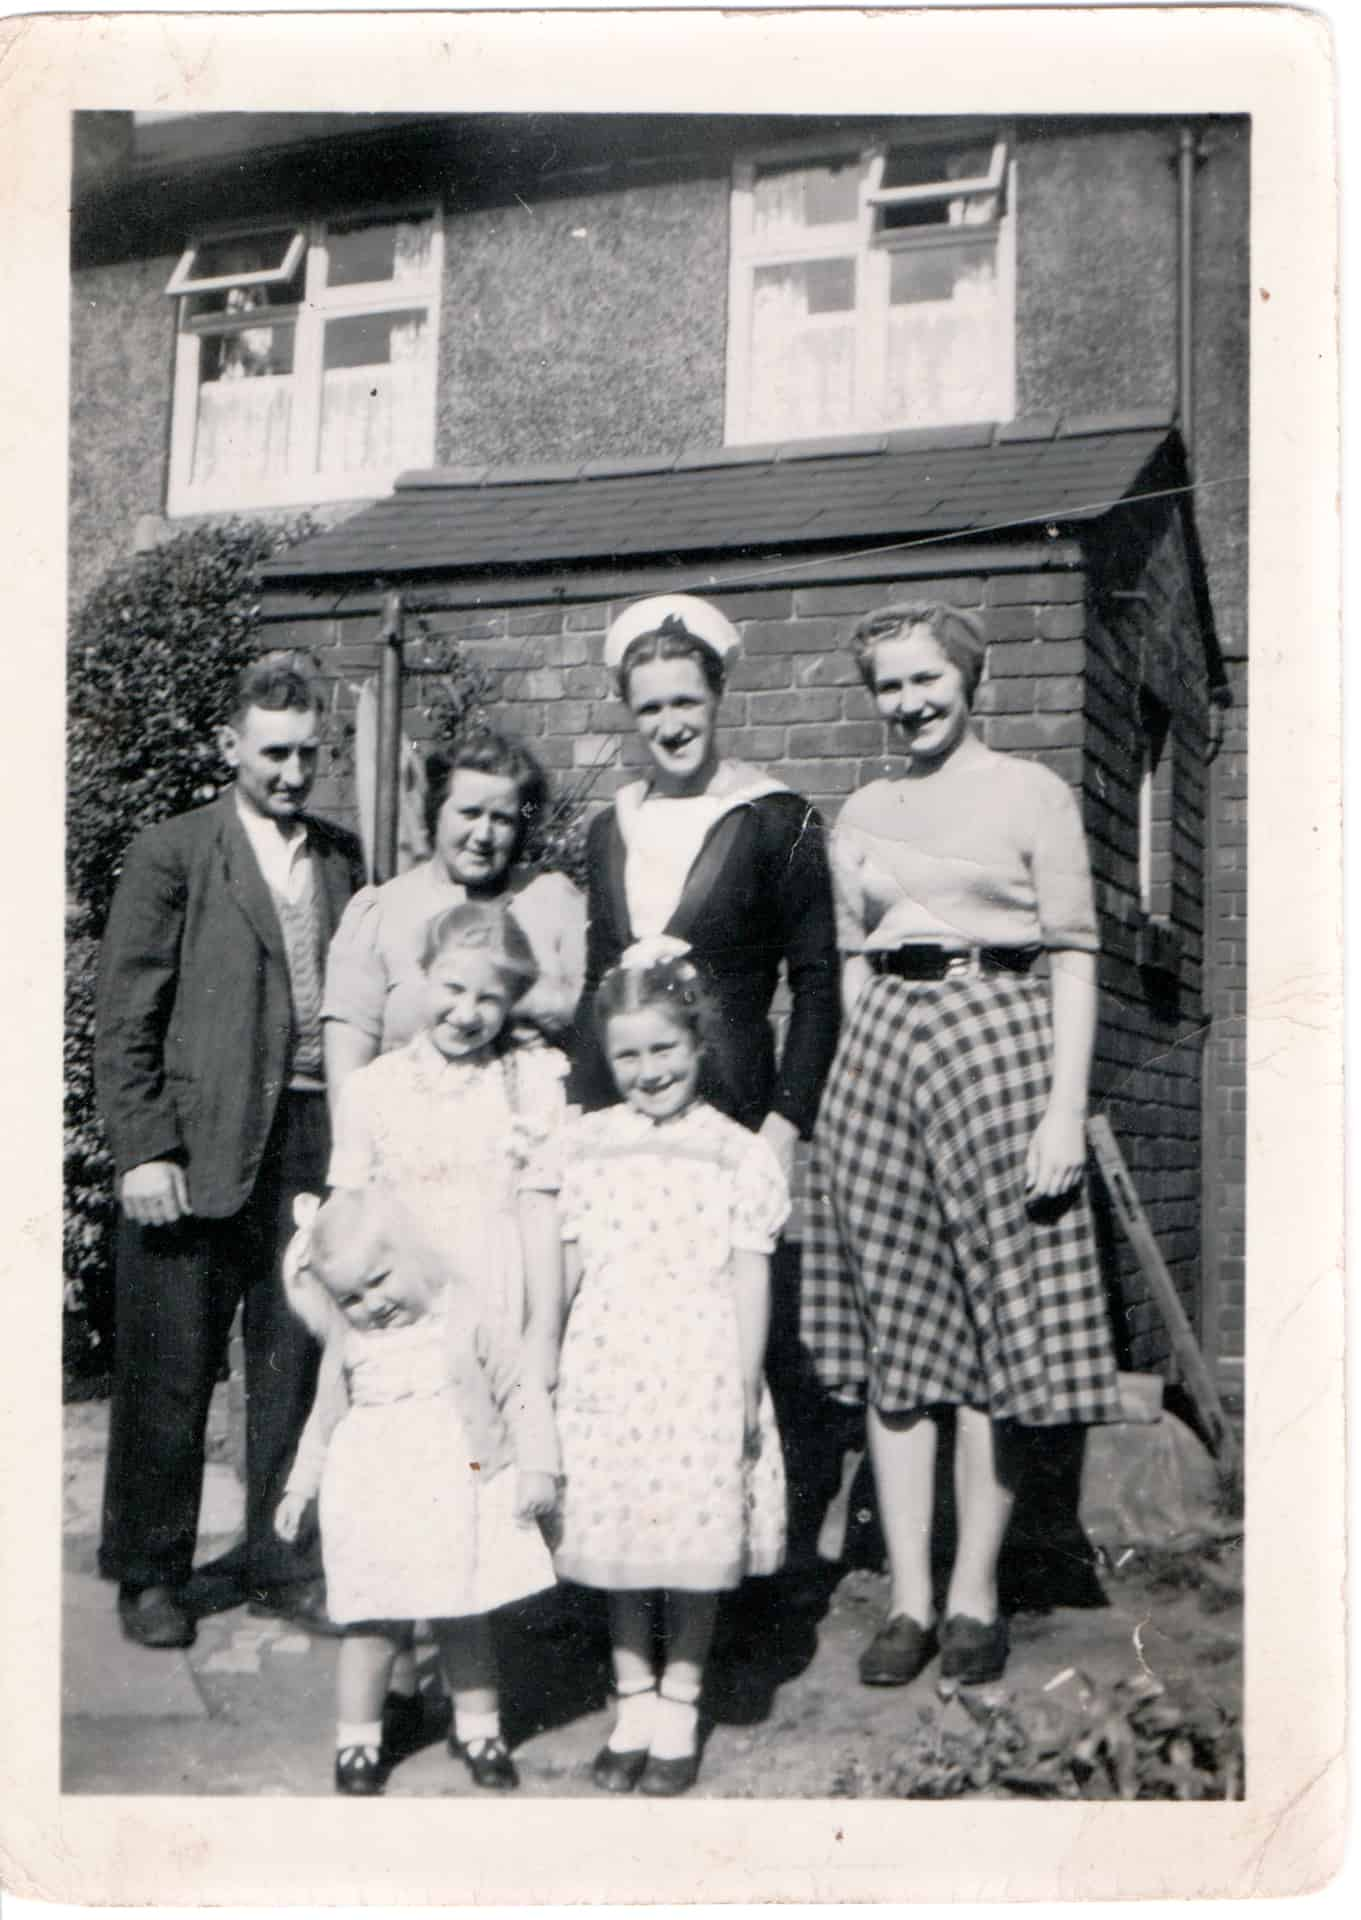 John Henry Price (back row in sailor's uniform) and his family photographed outside their house in Warley Road, Oldbury, in 1950.